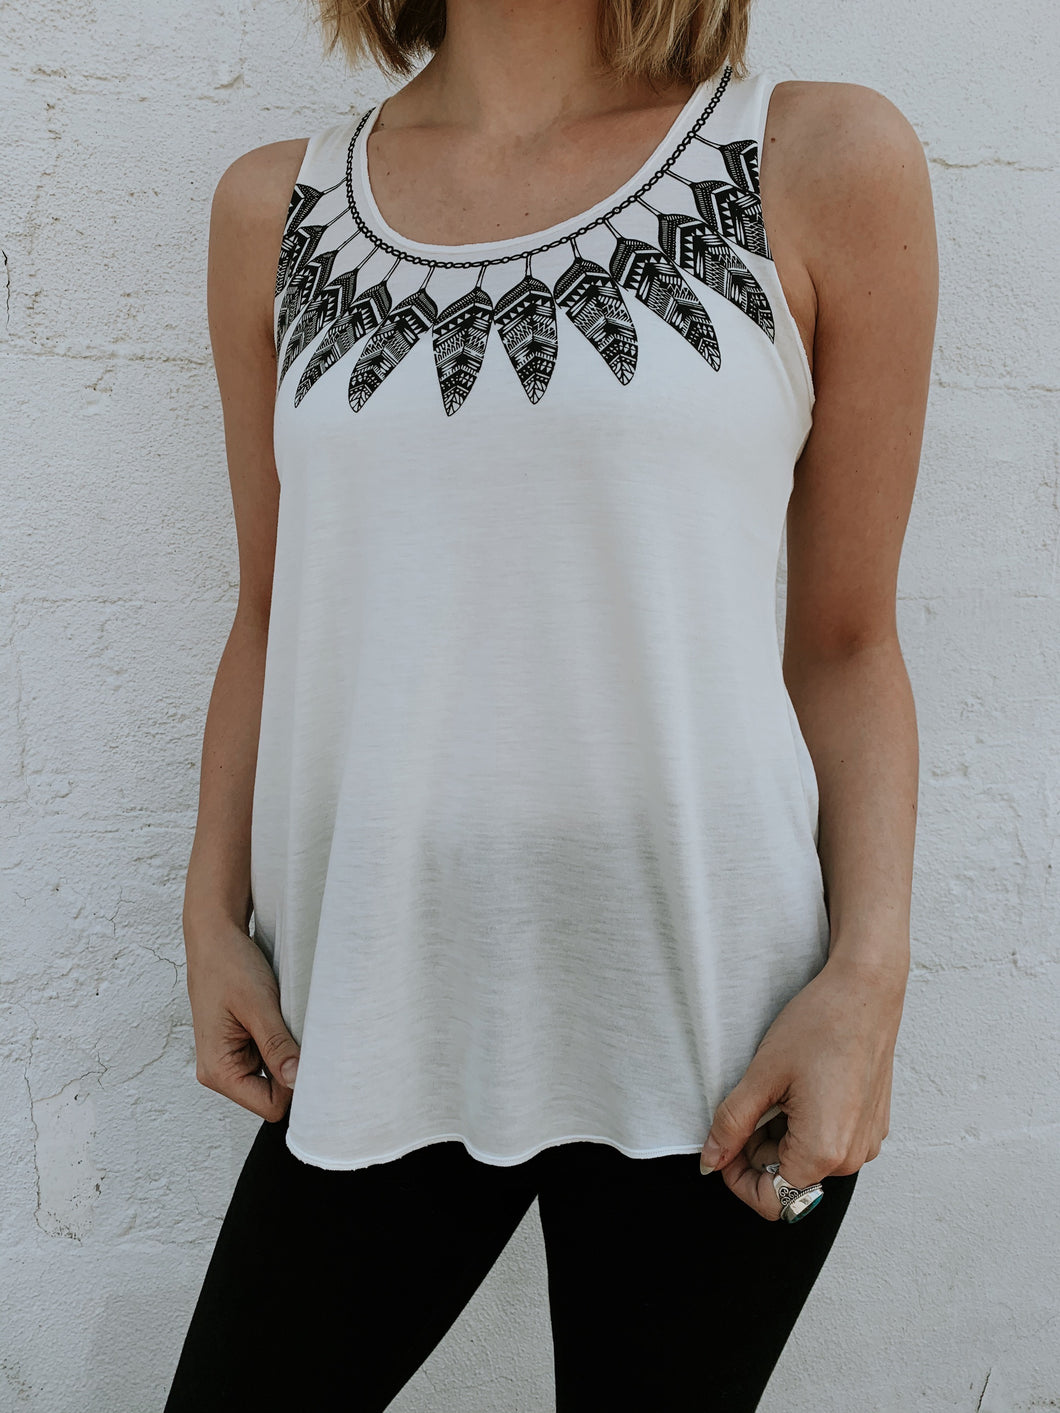 Tank Top- Black Feather